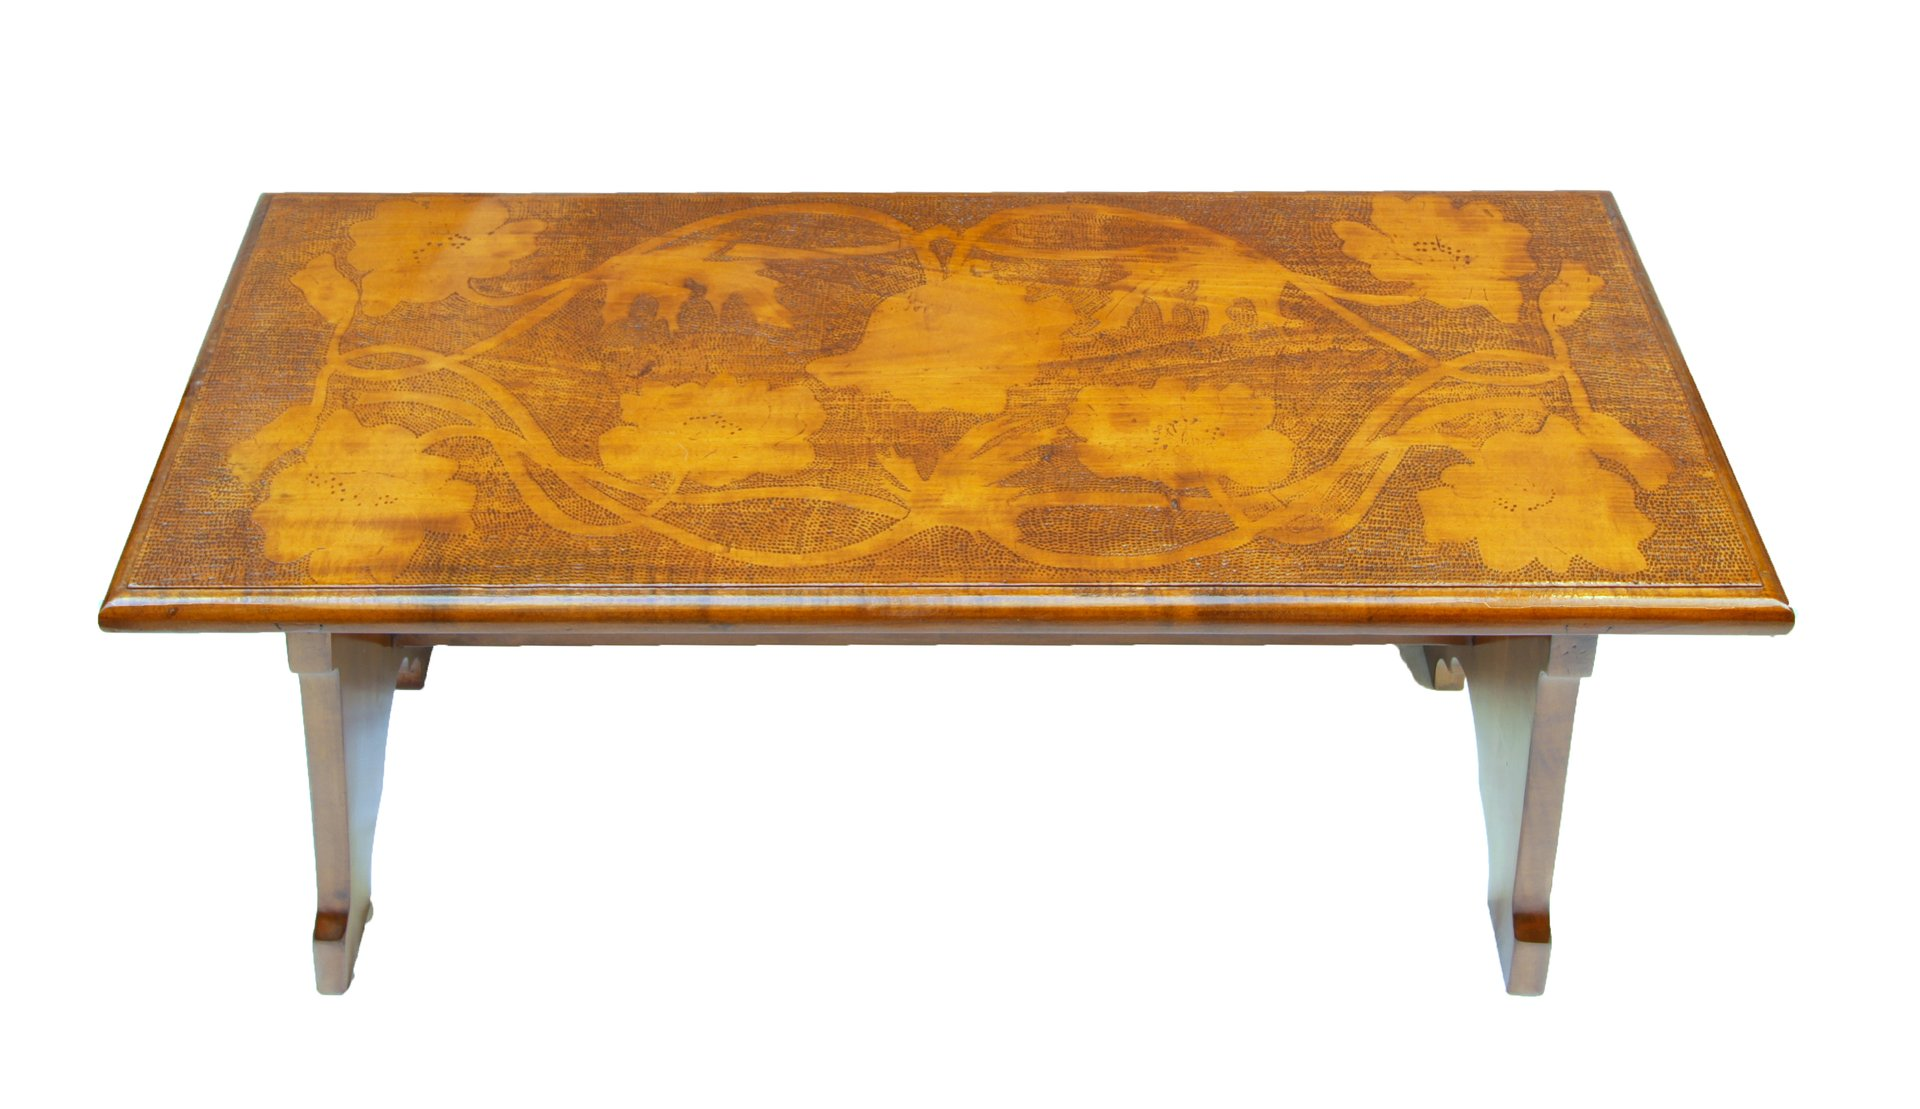 Art Nouveau Small German Pear Wood Bench With Floral Reliefs For Sale At Pamono